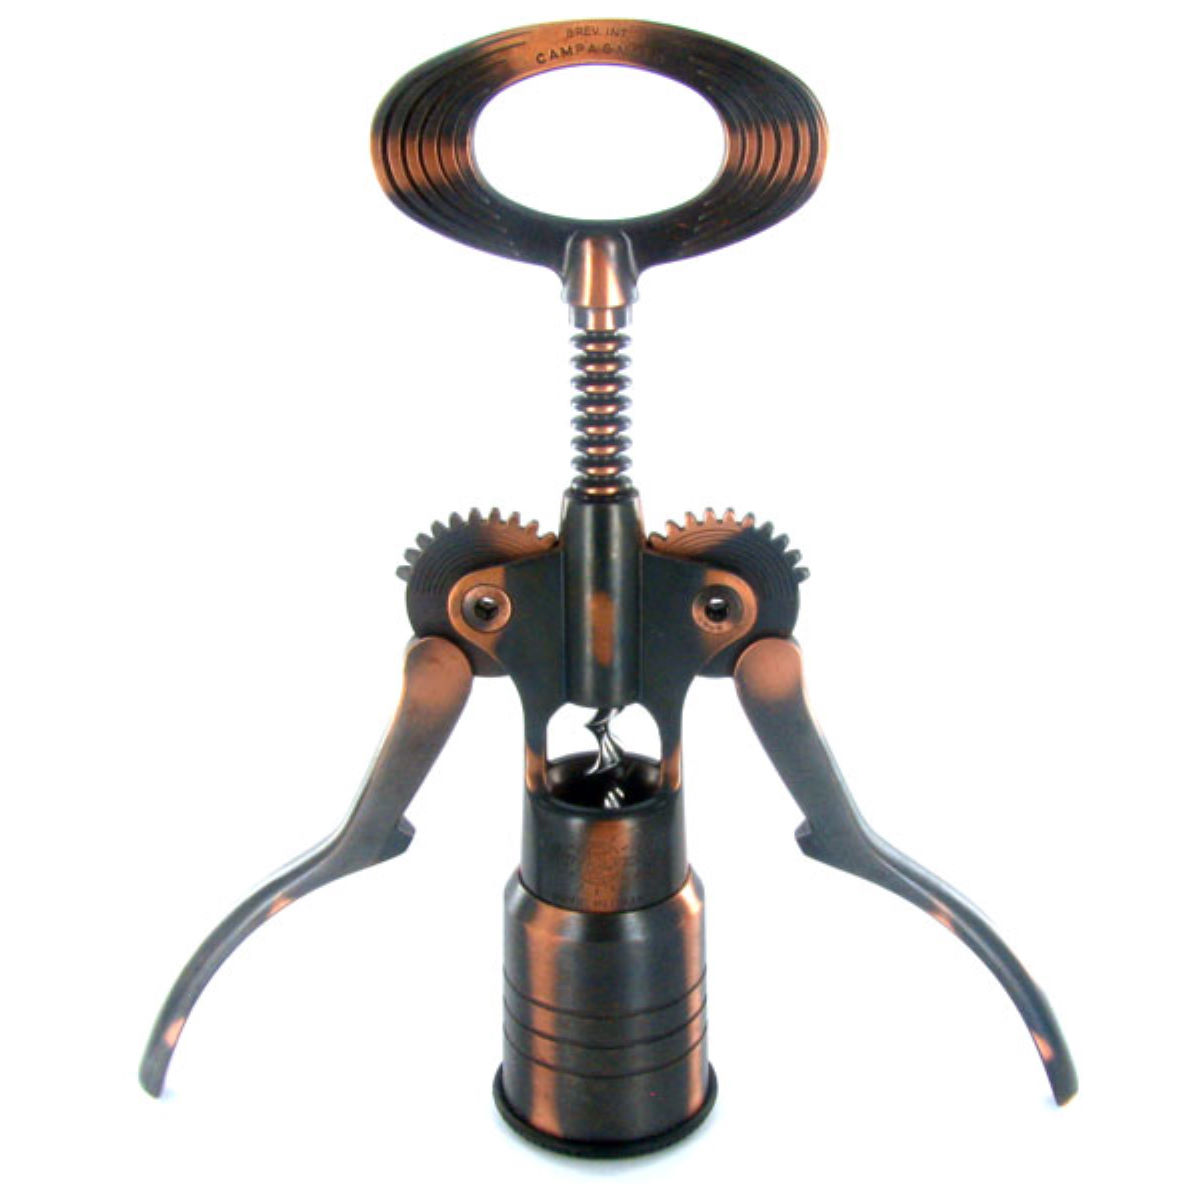 Campagnolo The Big Corkscrew Gift Items